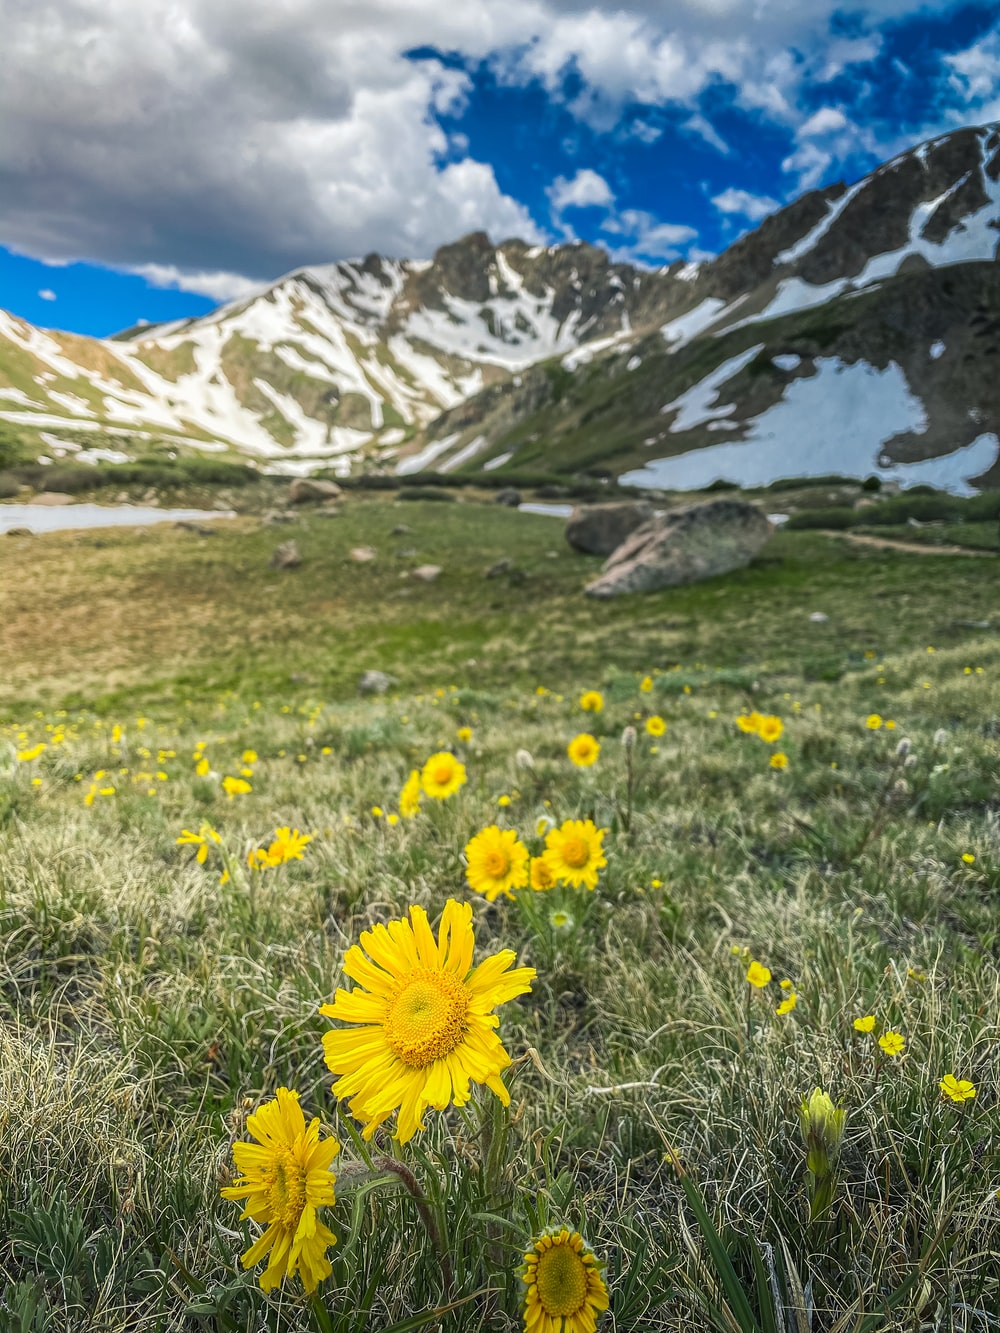 yellow flowers on green grass field near snow covered mountain during daytime